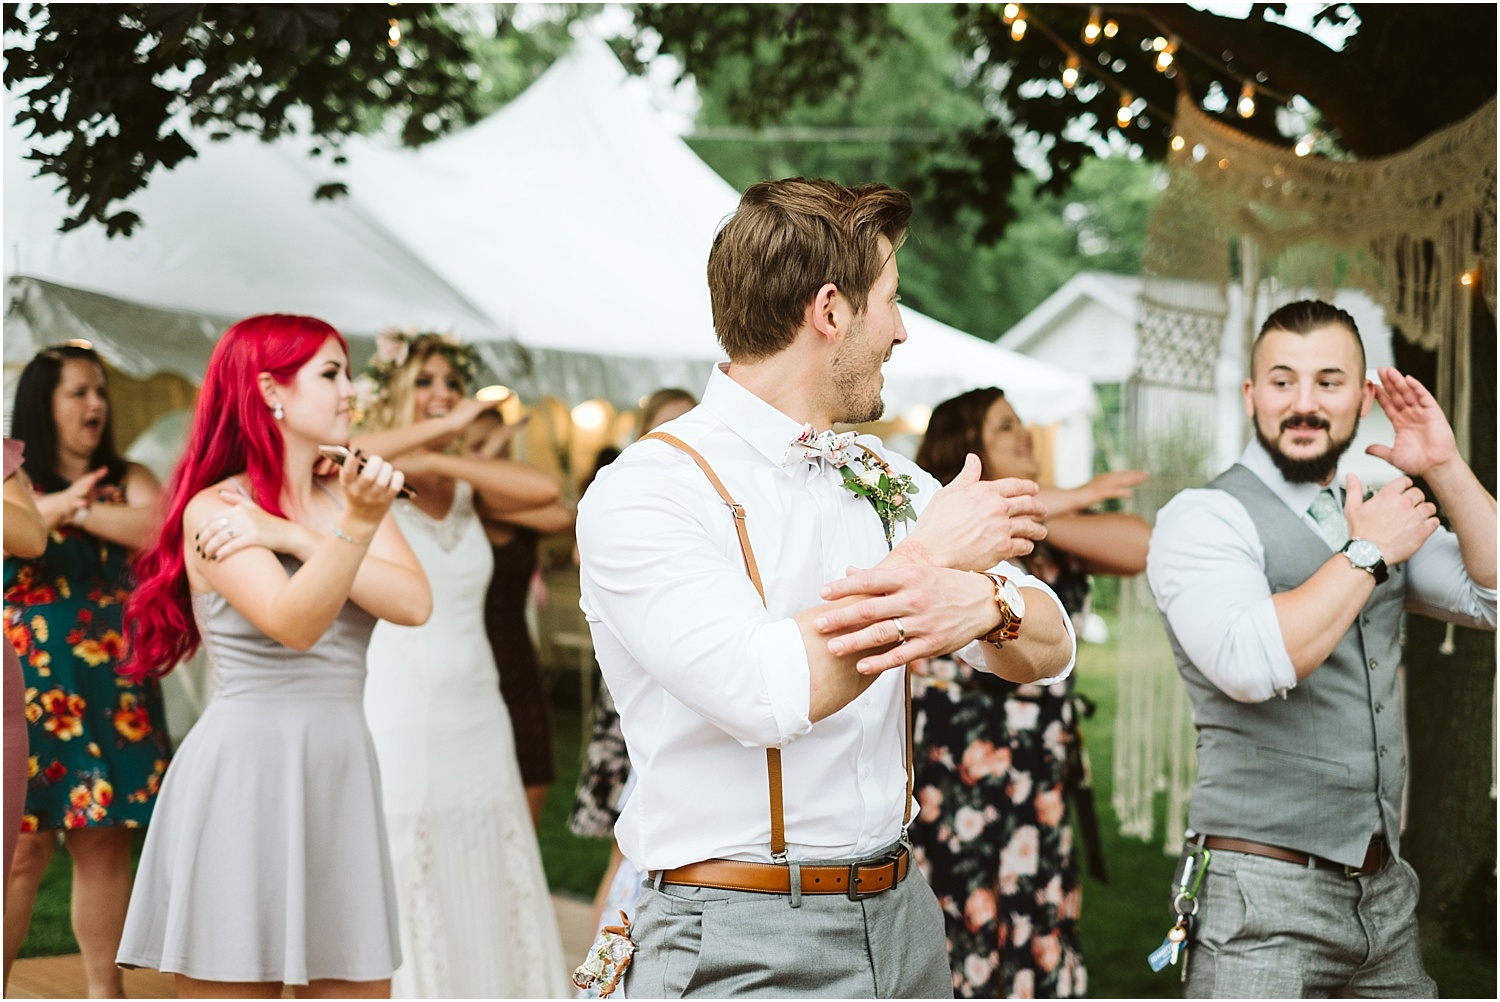 j-b-joyful-happy-smile-dancing-backyard-diy-boho-chic-wedding_0052.jpg